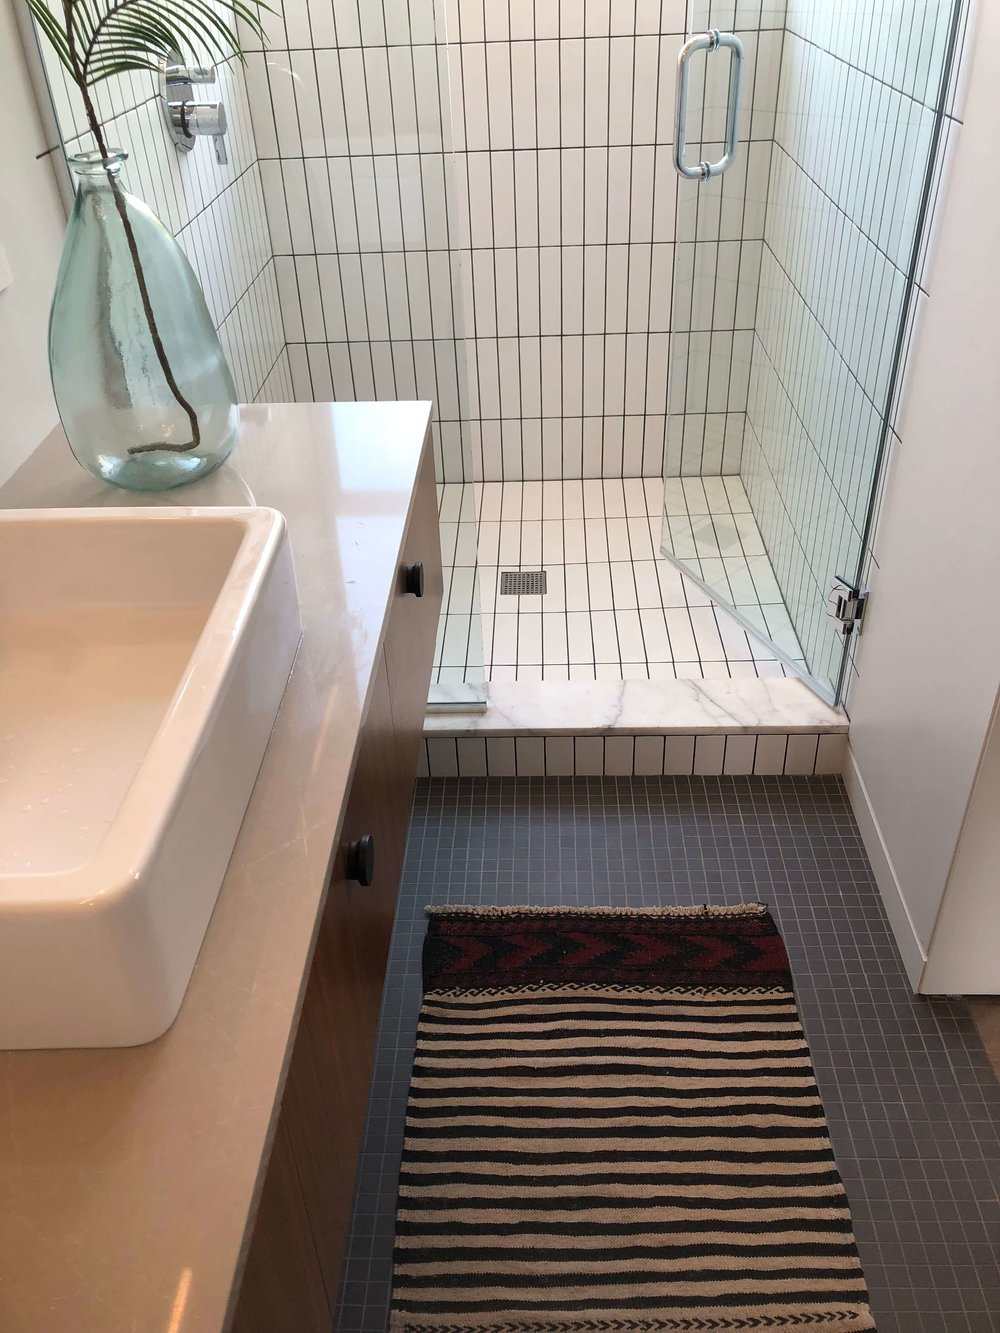 Modern bathroom with black mosaic tile floor and white tiled shower - California home tour